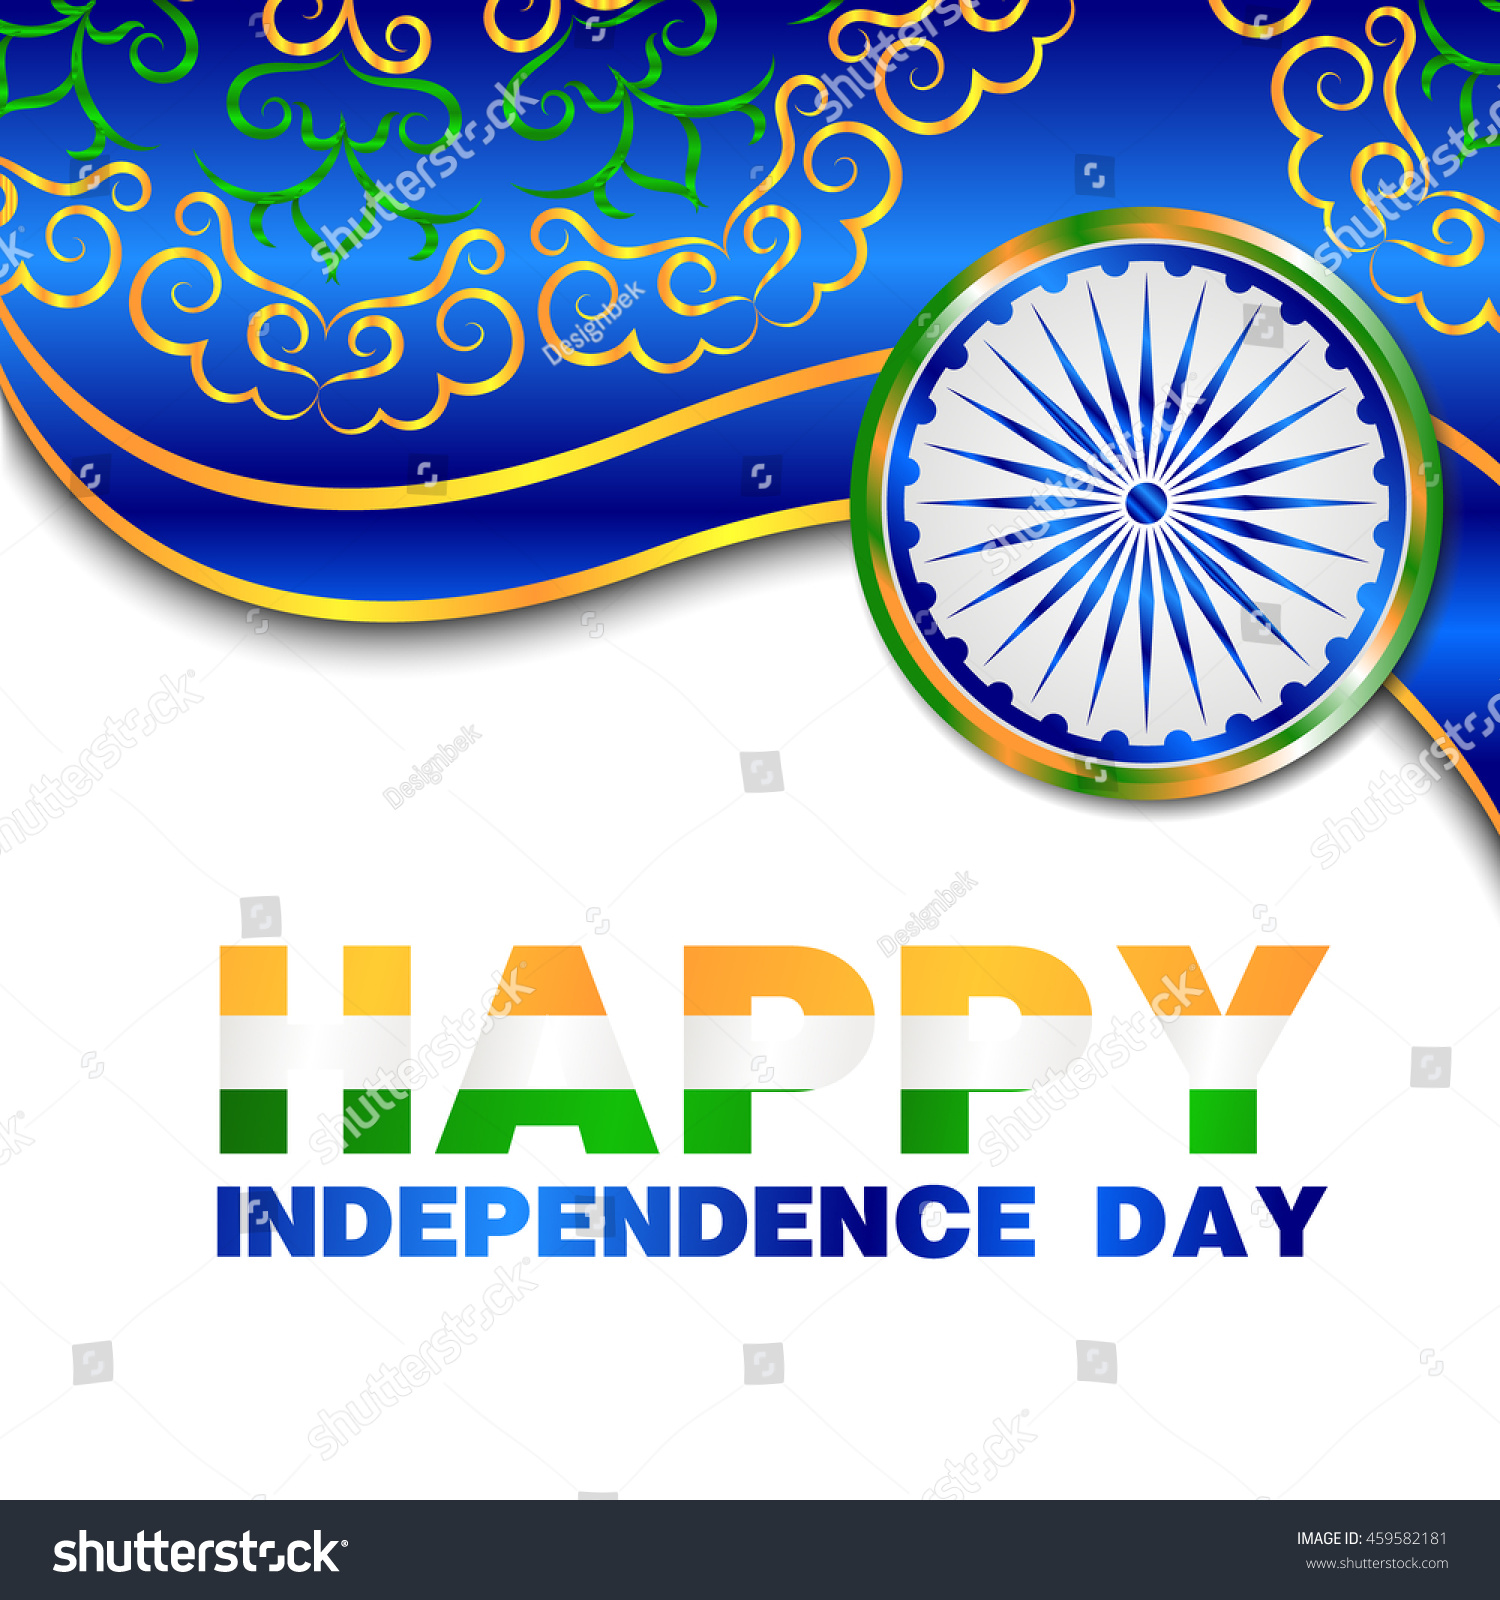 Happy Independence Day India Greeting Card Stock Vector Royalty